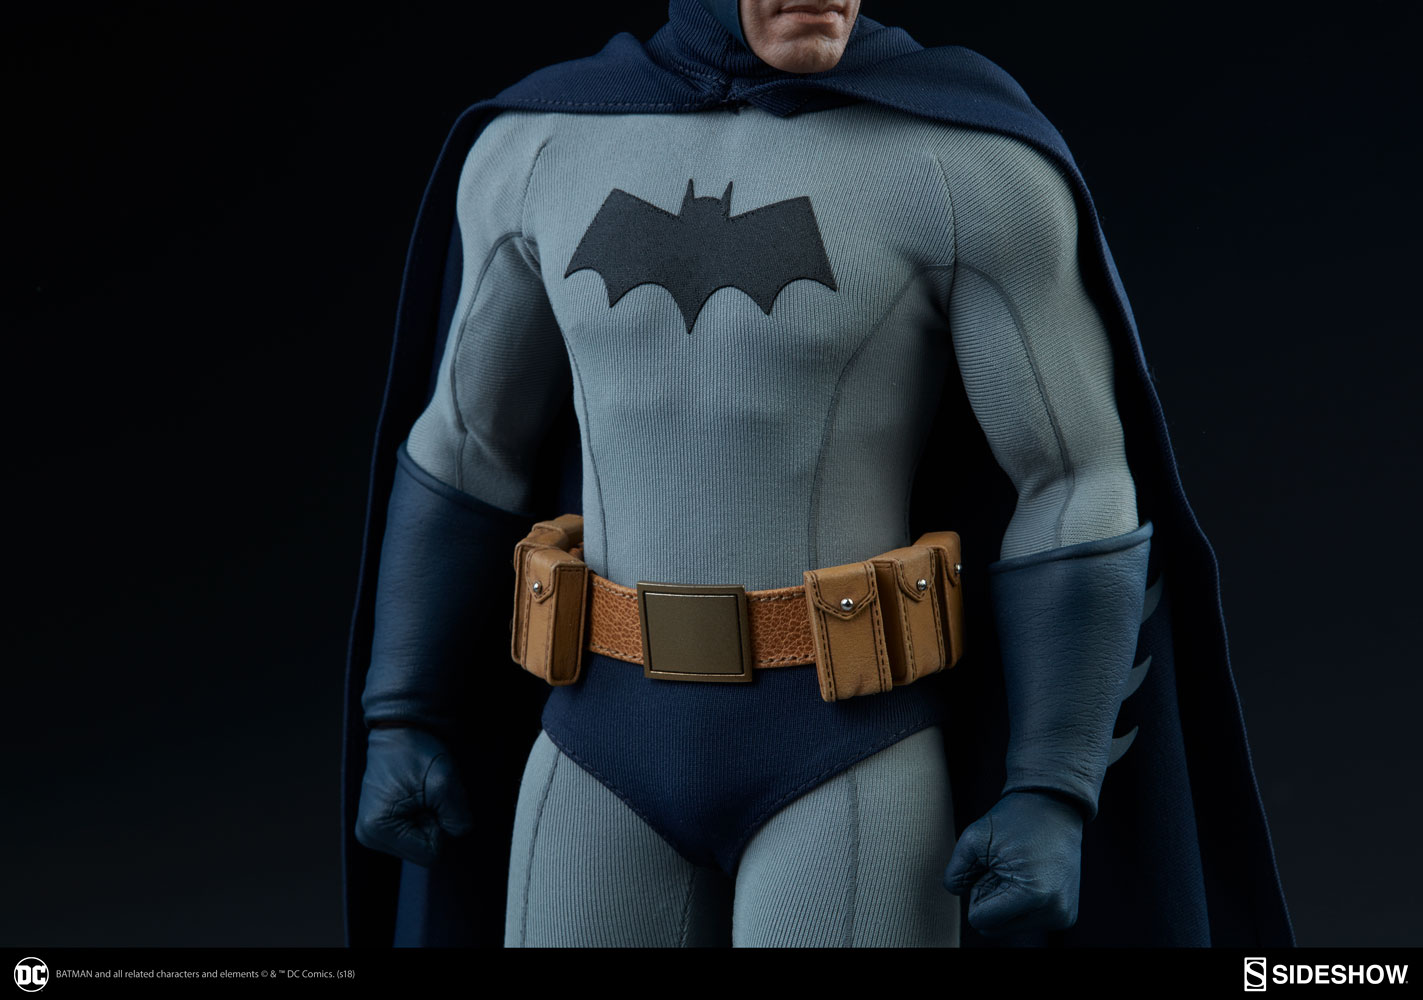 dc-comics-batman-sixth-scale-figure-sideshow-100425-11